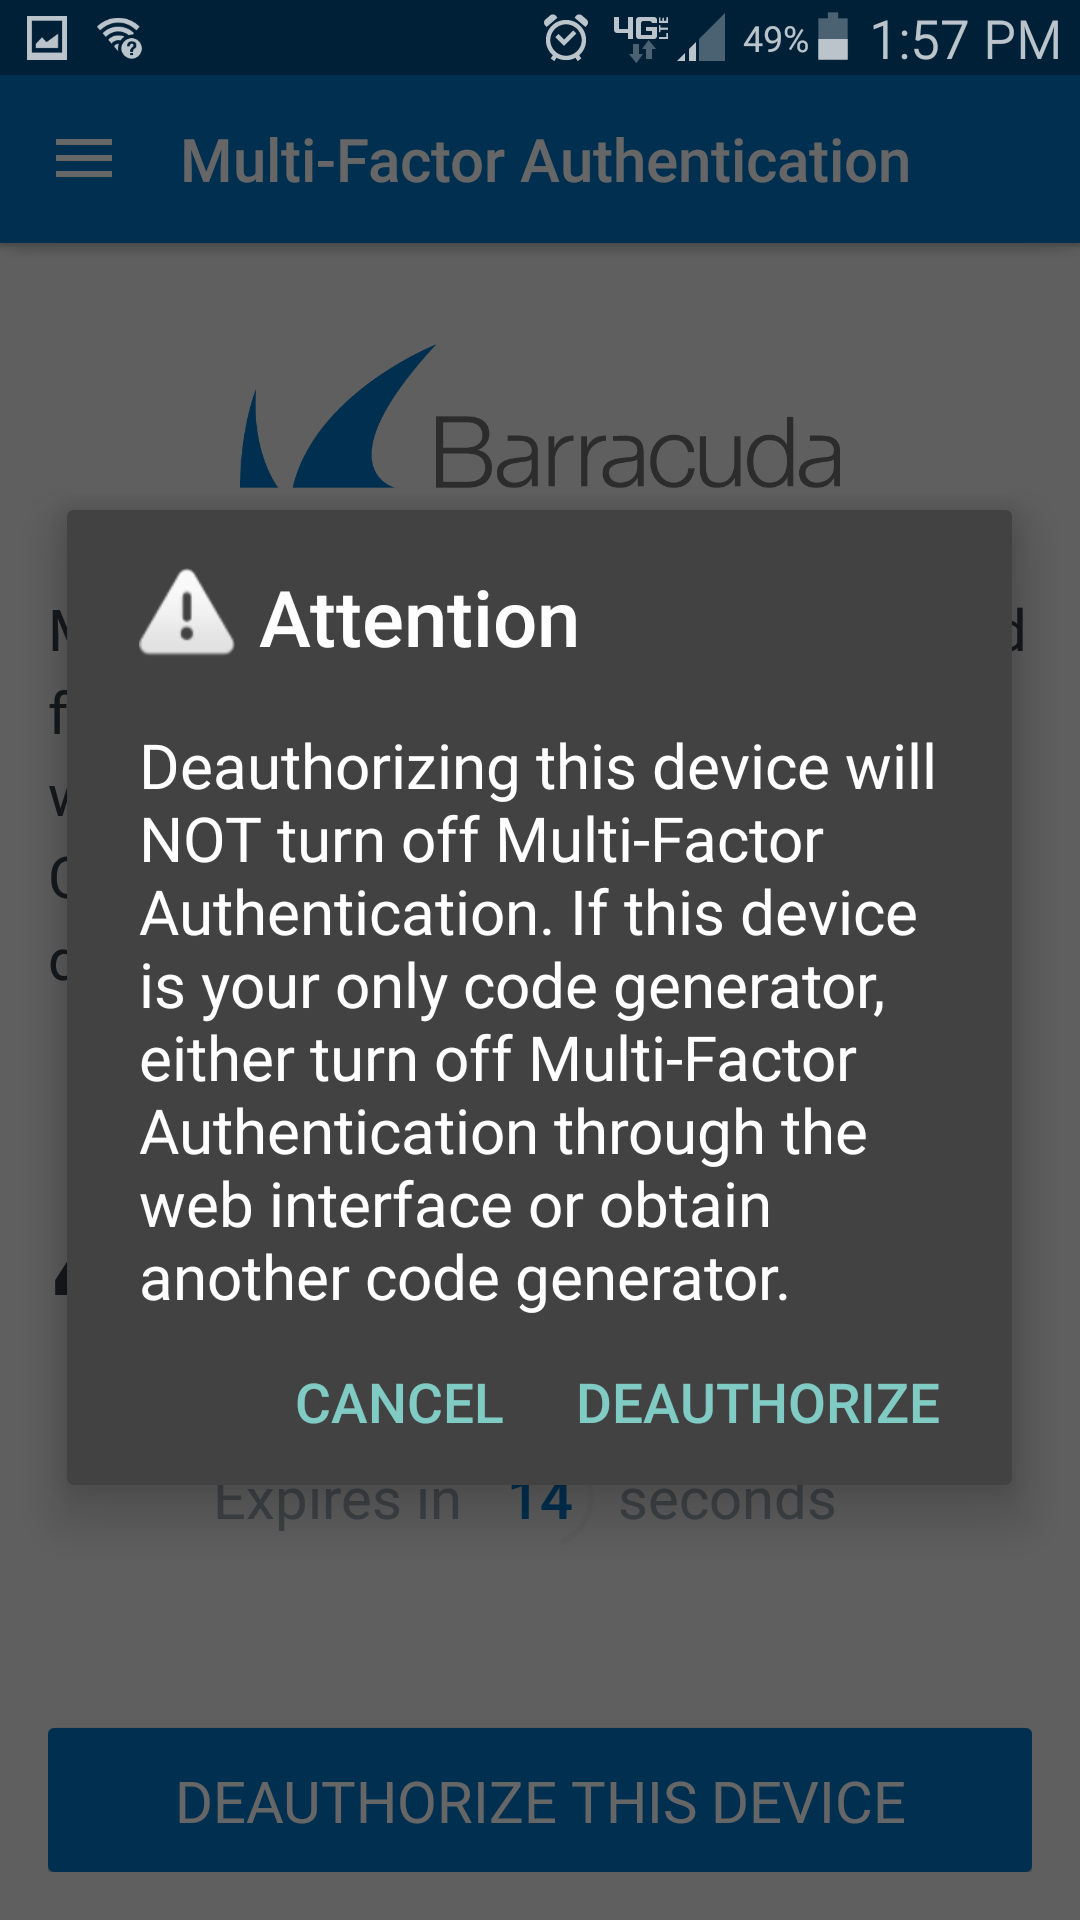 androidMFAdeauth.png